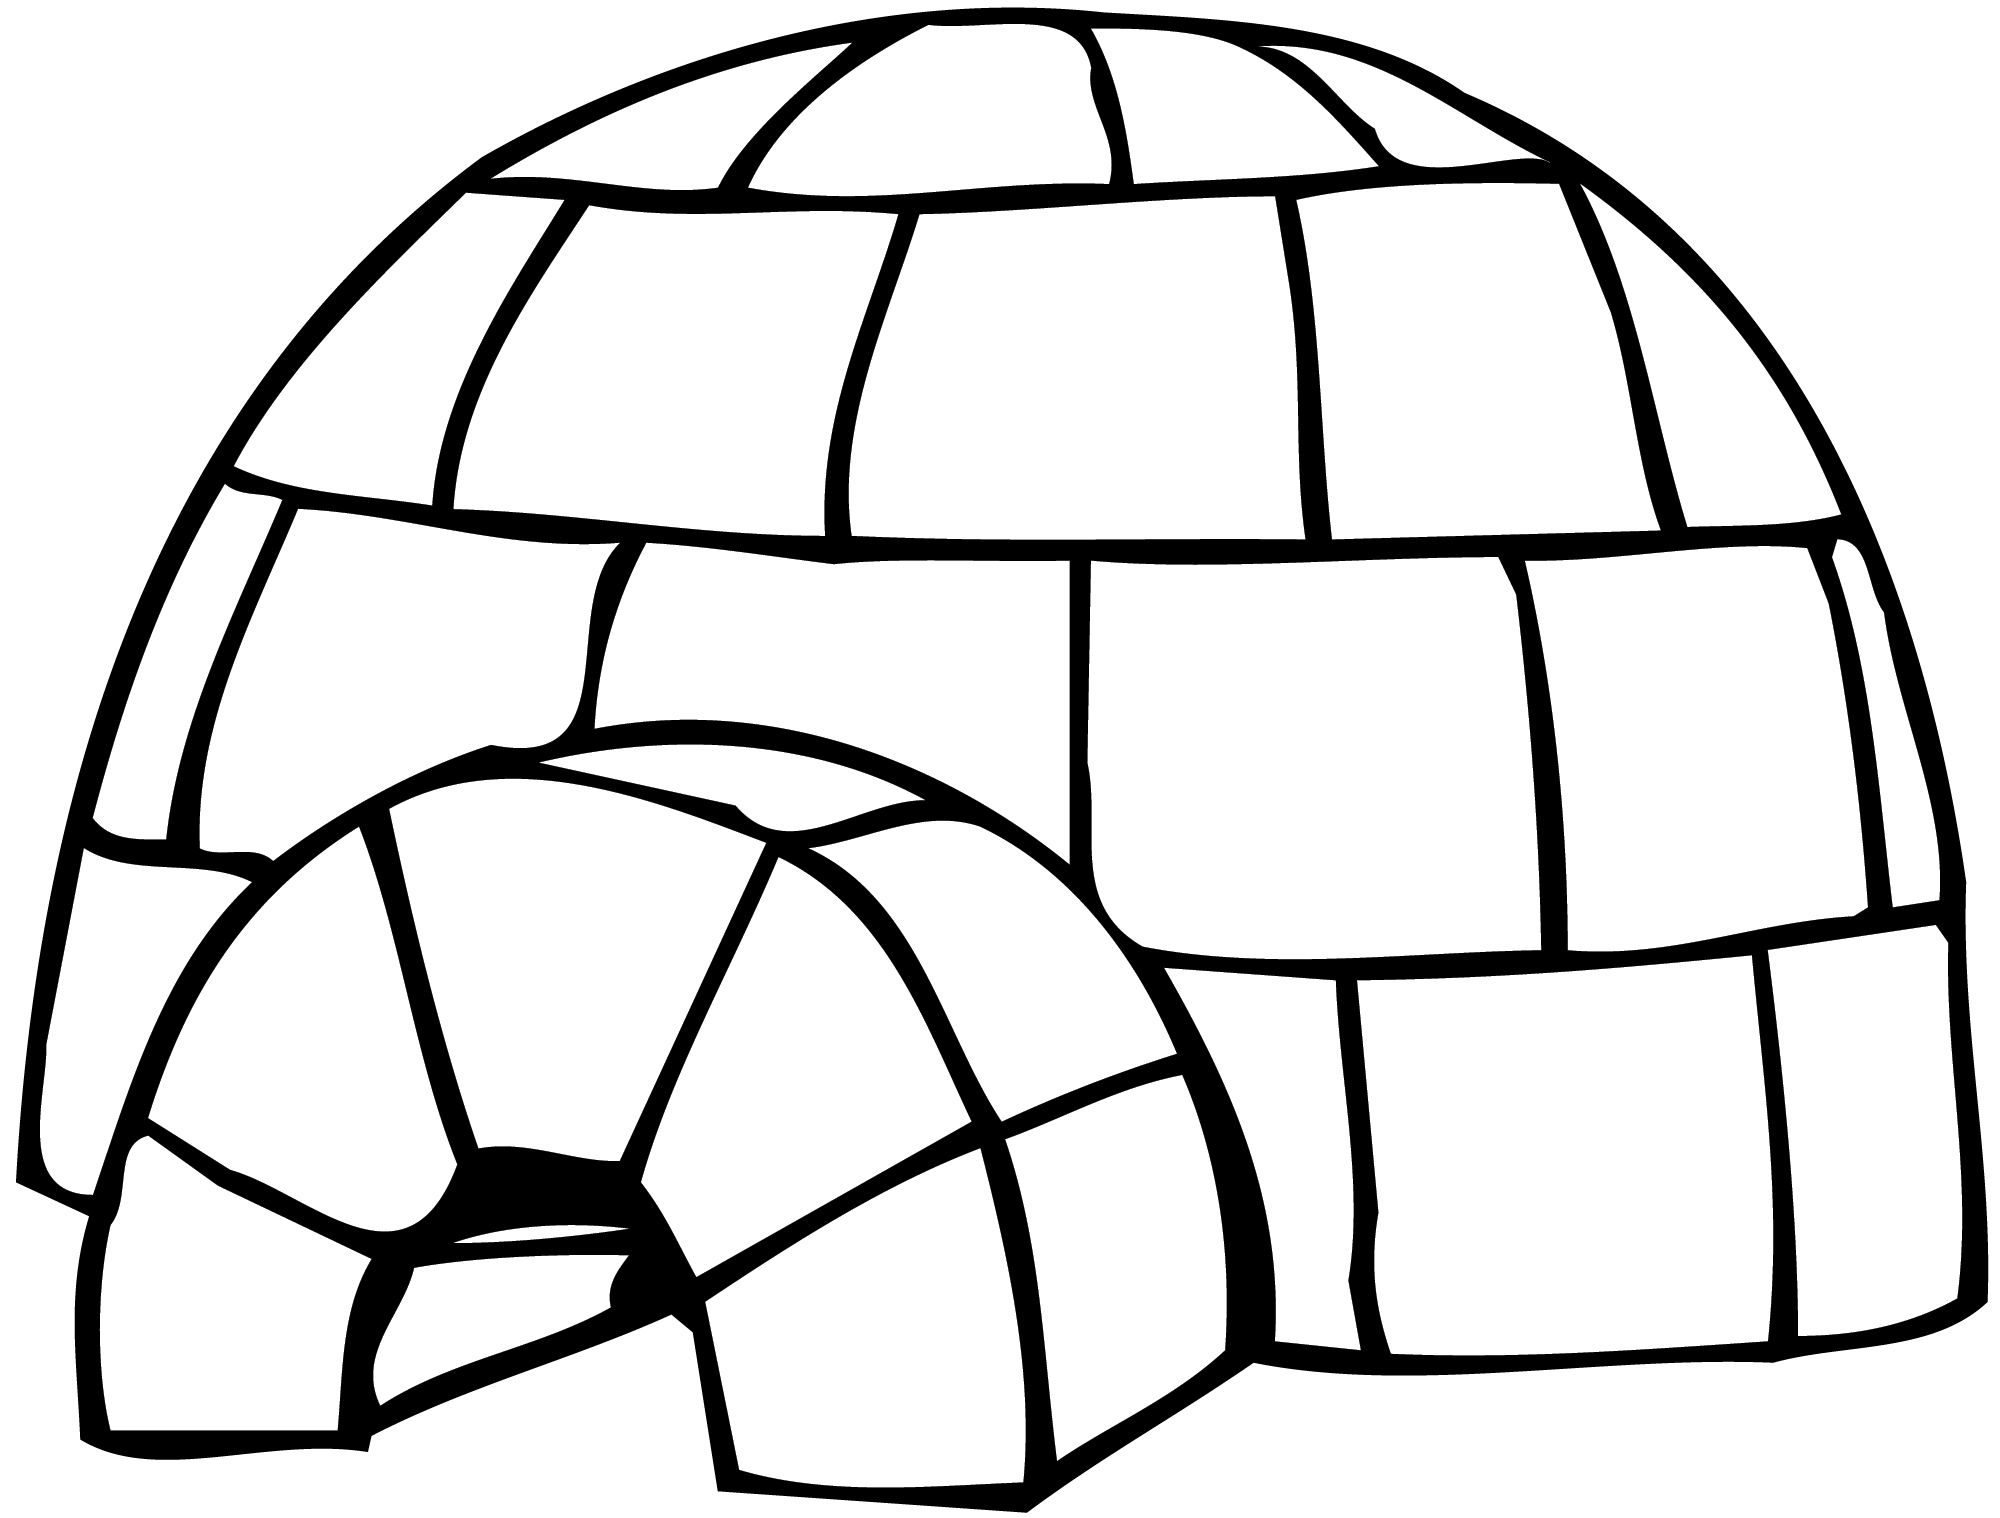 Best Igloo Clipart 11283 Igloo Craft Penguin Coloring Pages